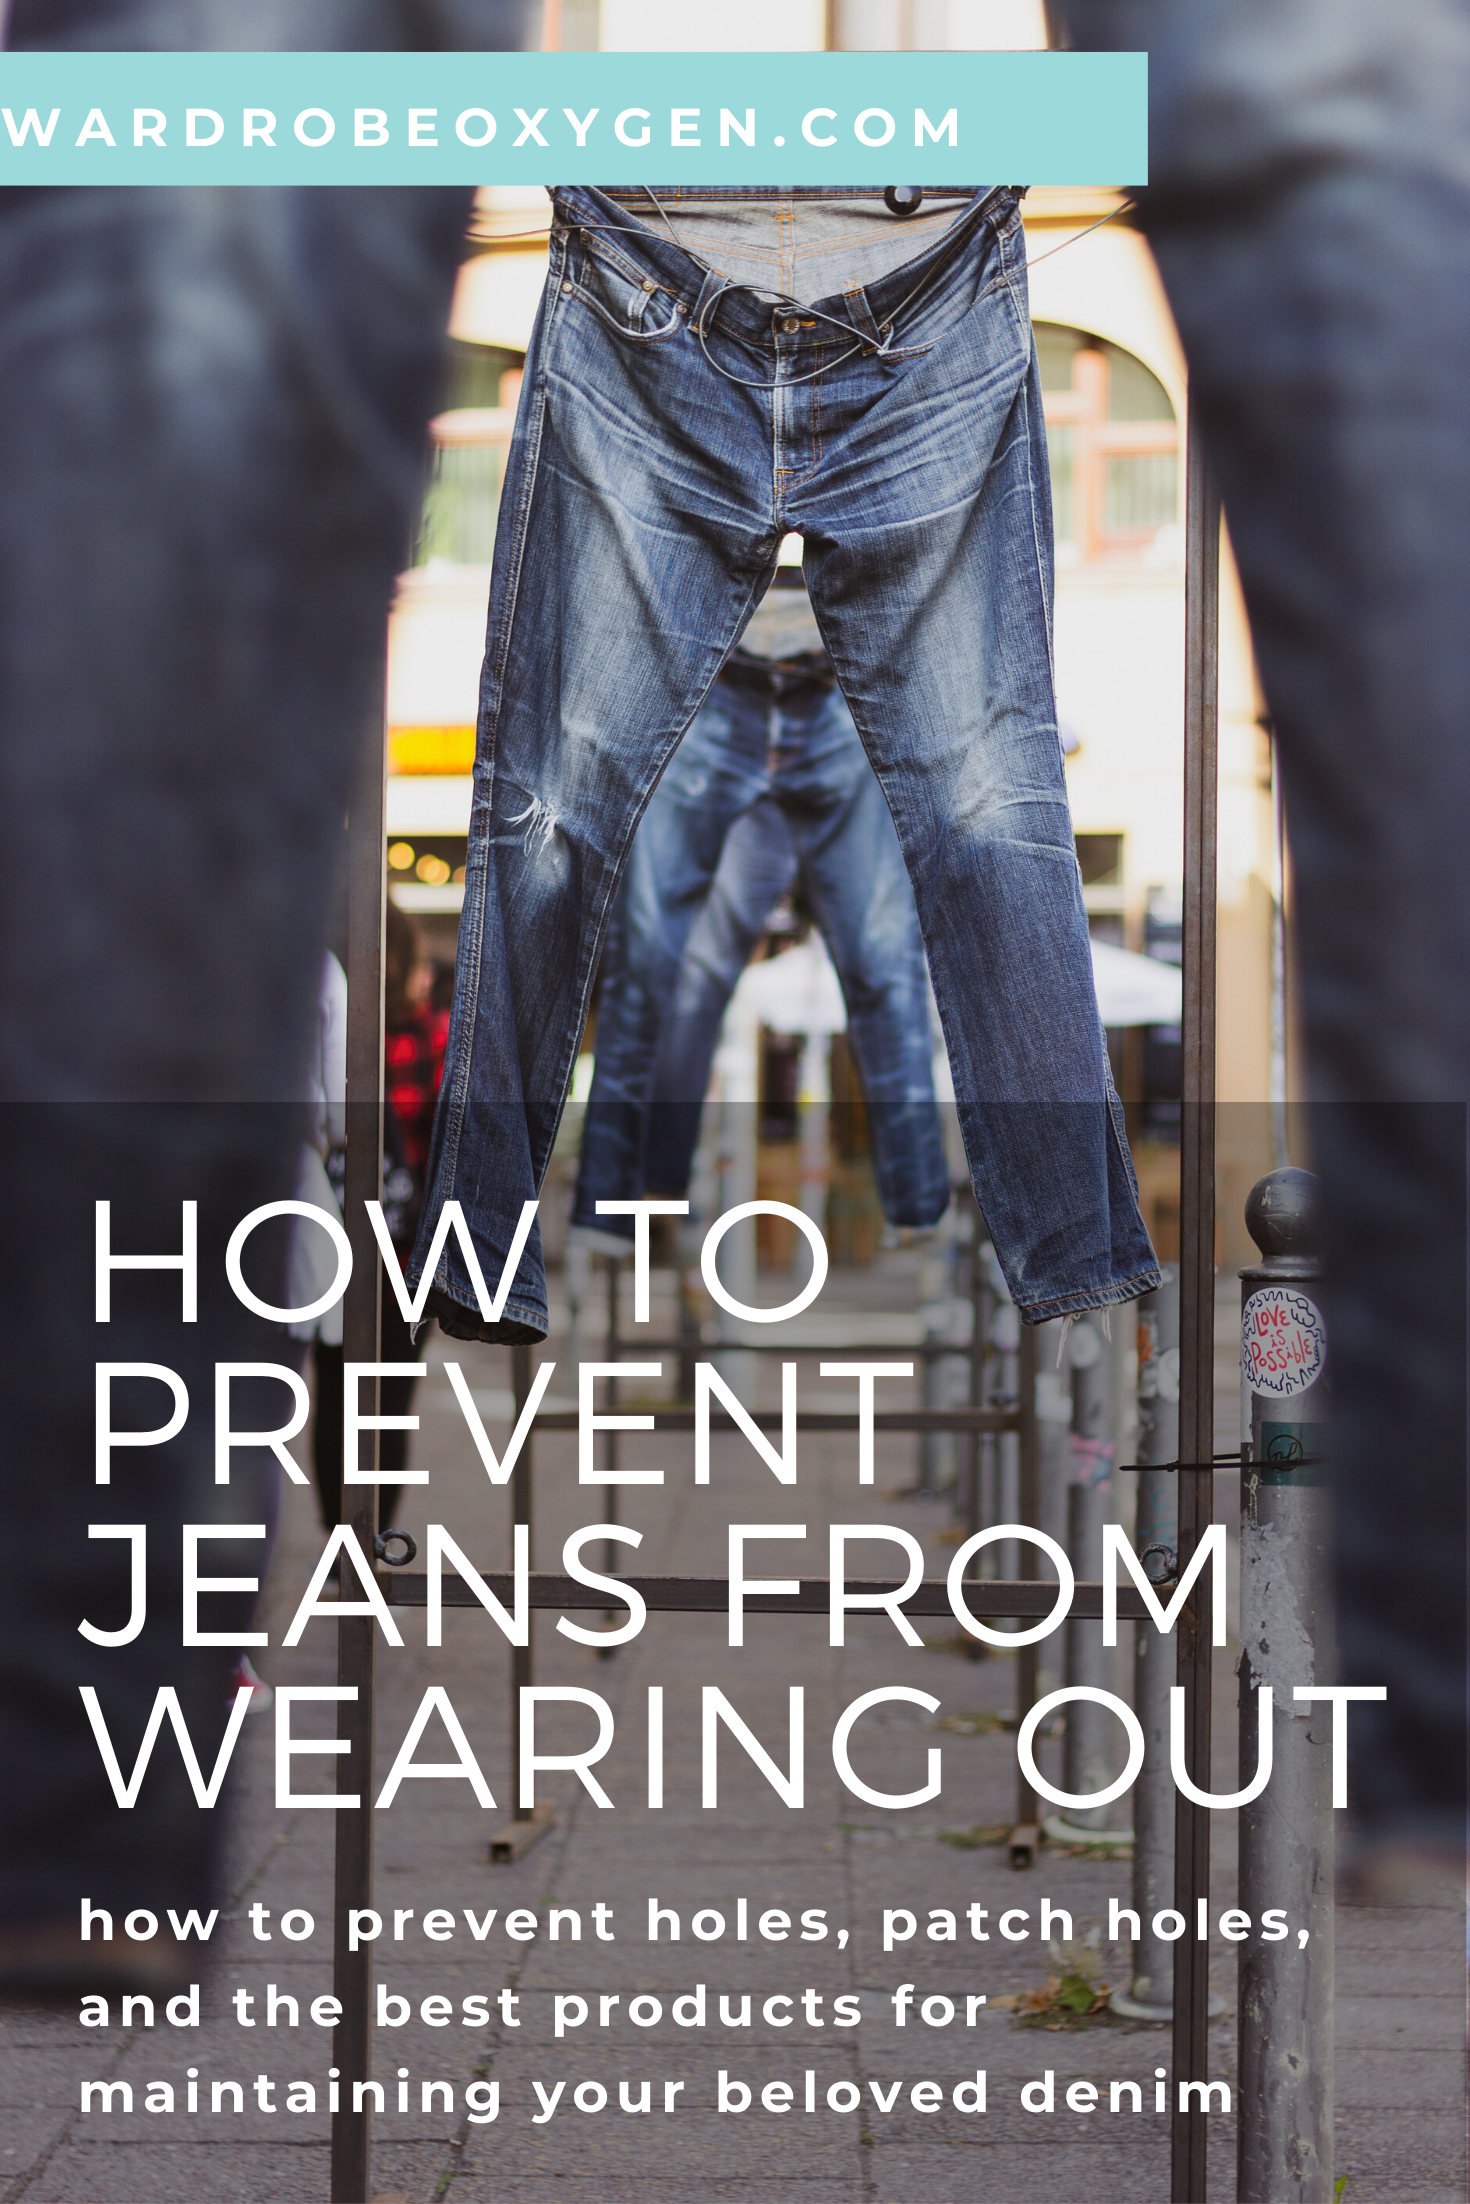 How To Prevent Jeans From Wearing Out In The Inner Thighs Wardrobe Oxygen